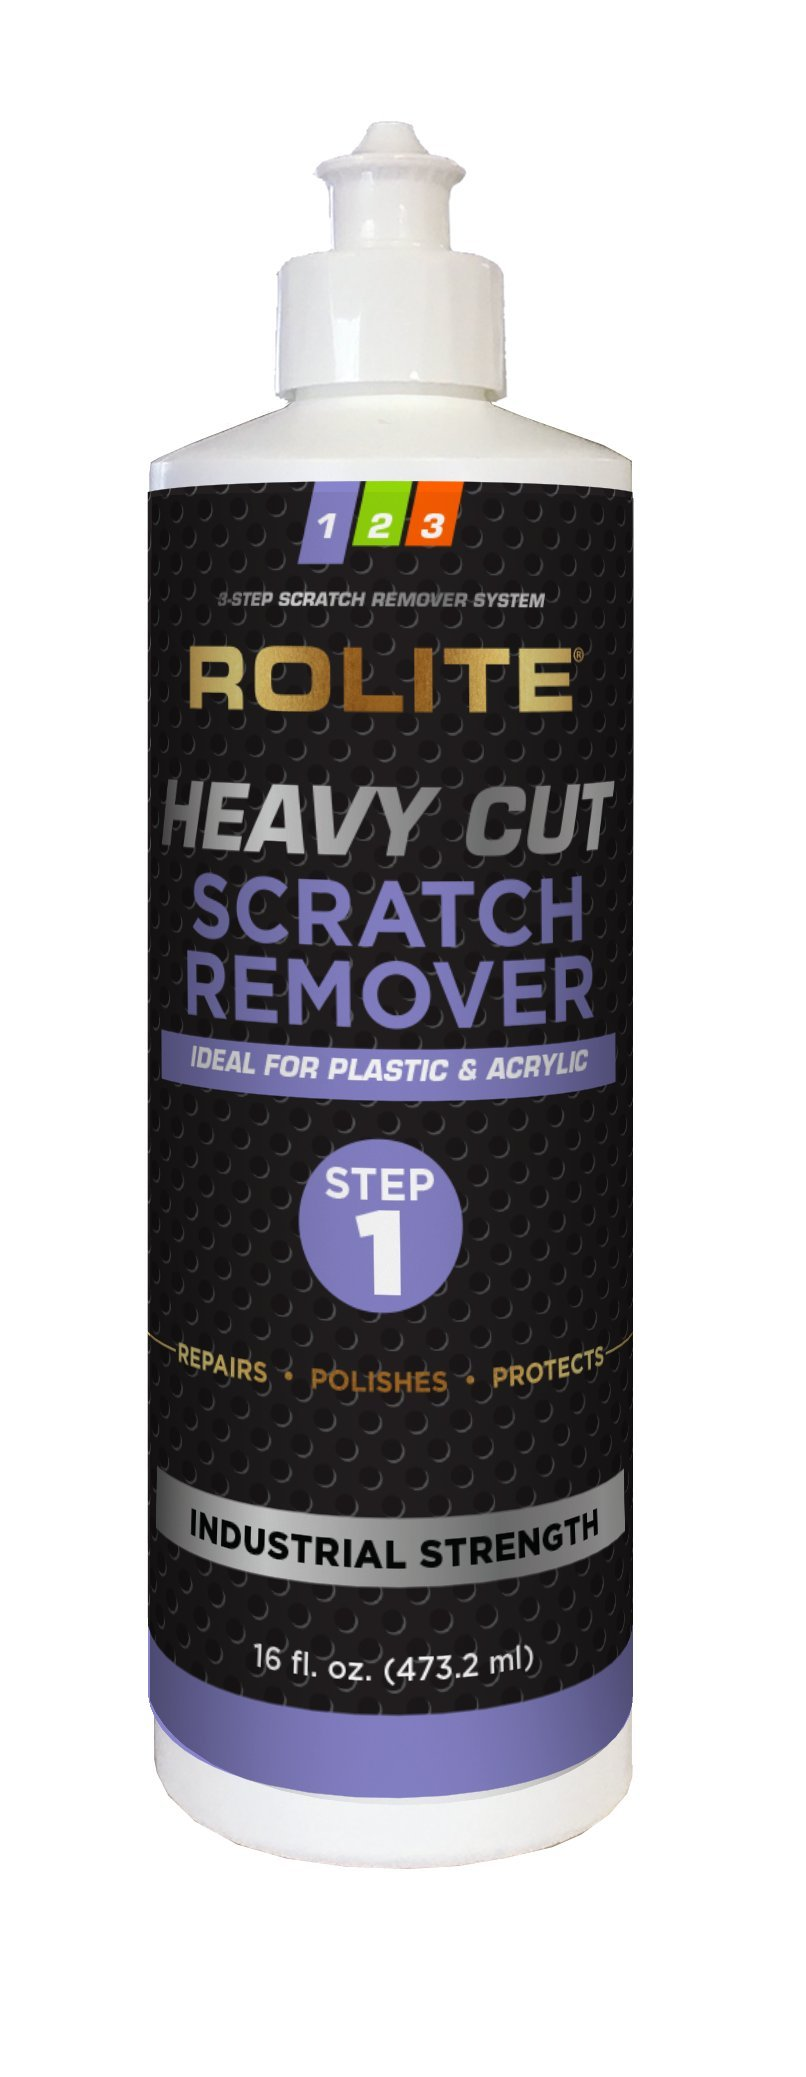 Rolite Heavy Cut Scratch Remover (16 fl. oz.) for Plastic & Acrylic Surfaces Including Marine Strataglass & Eisenglass, Headlights, Aquariums